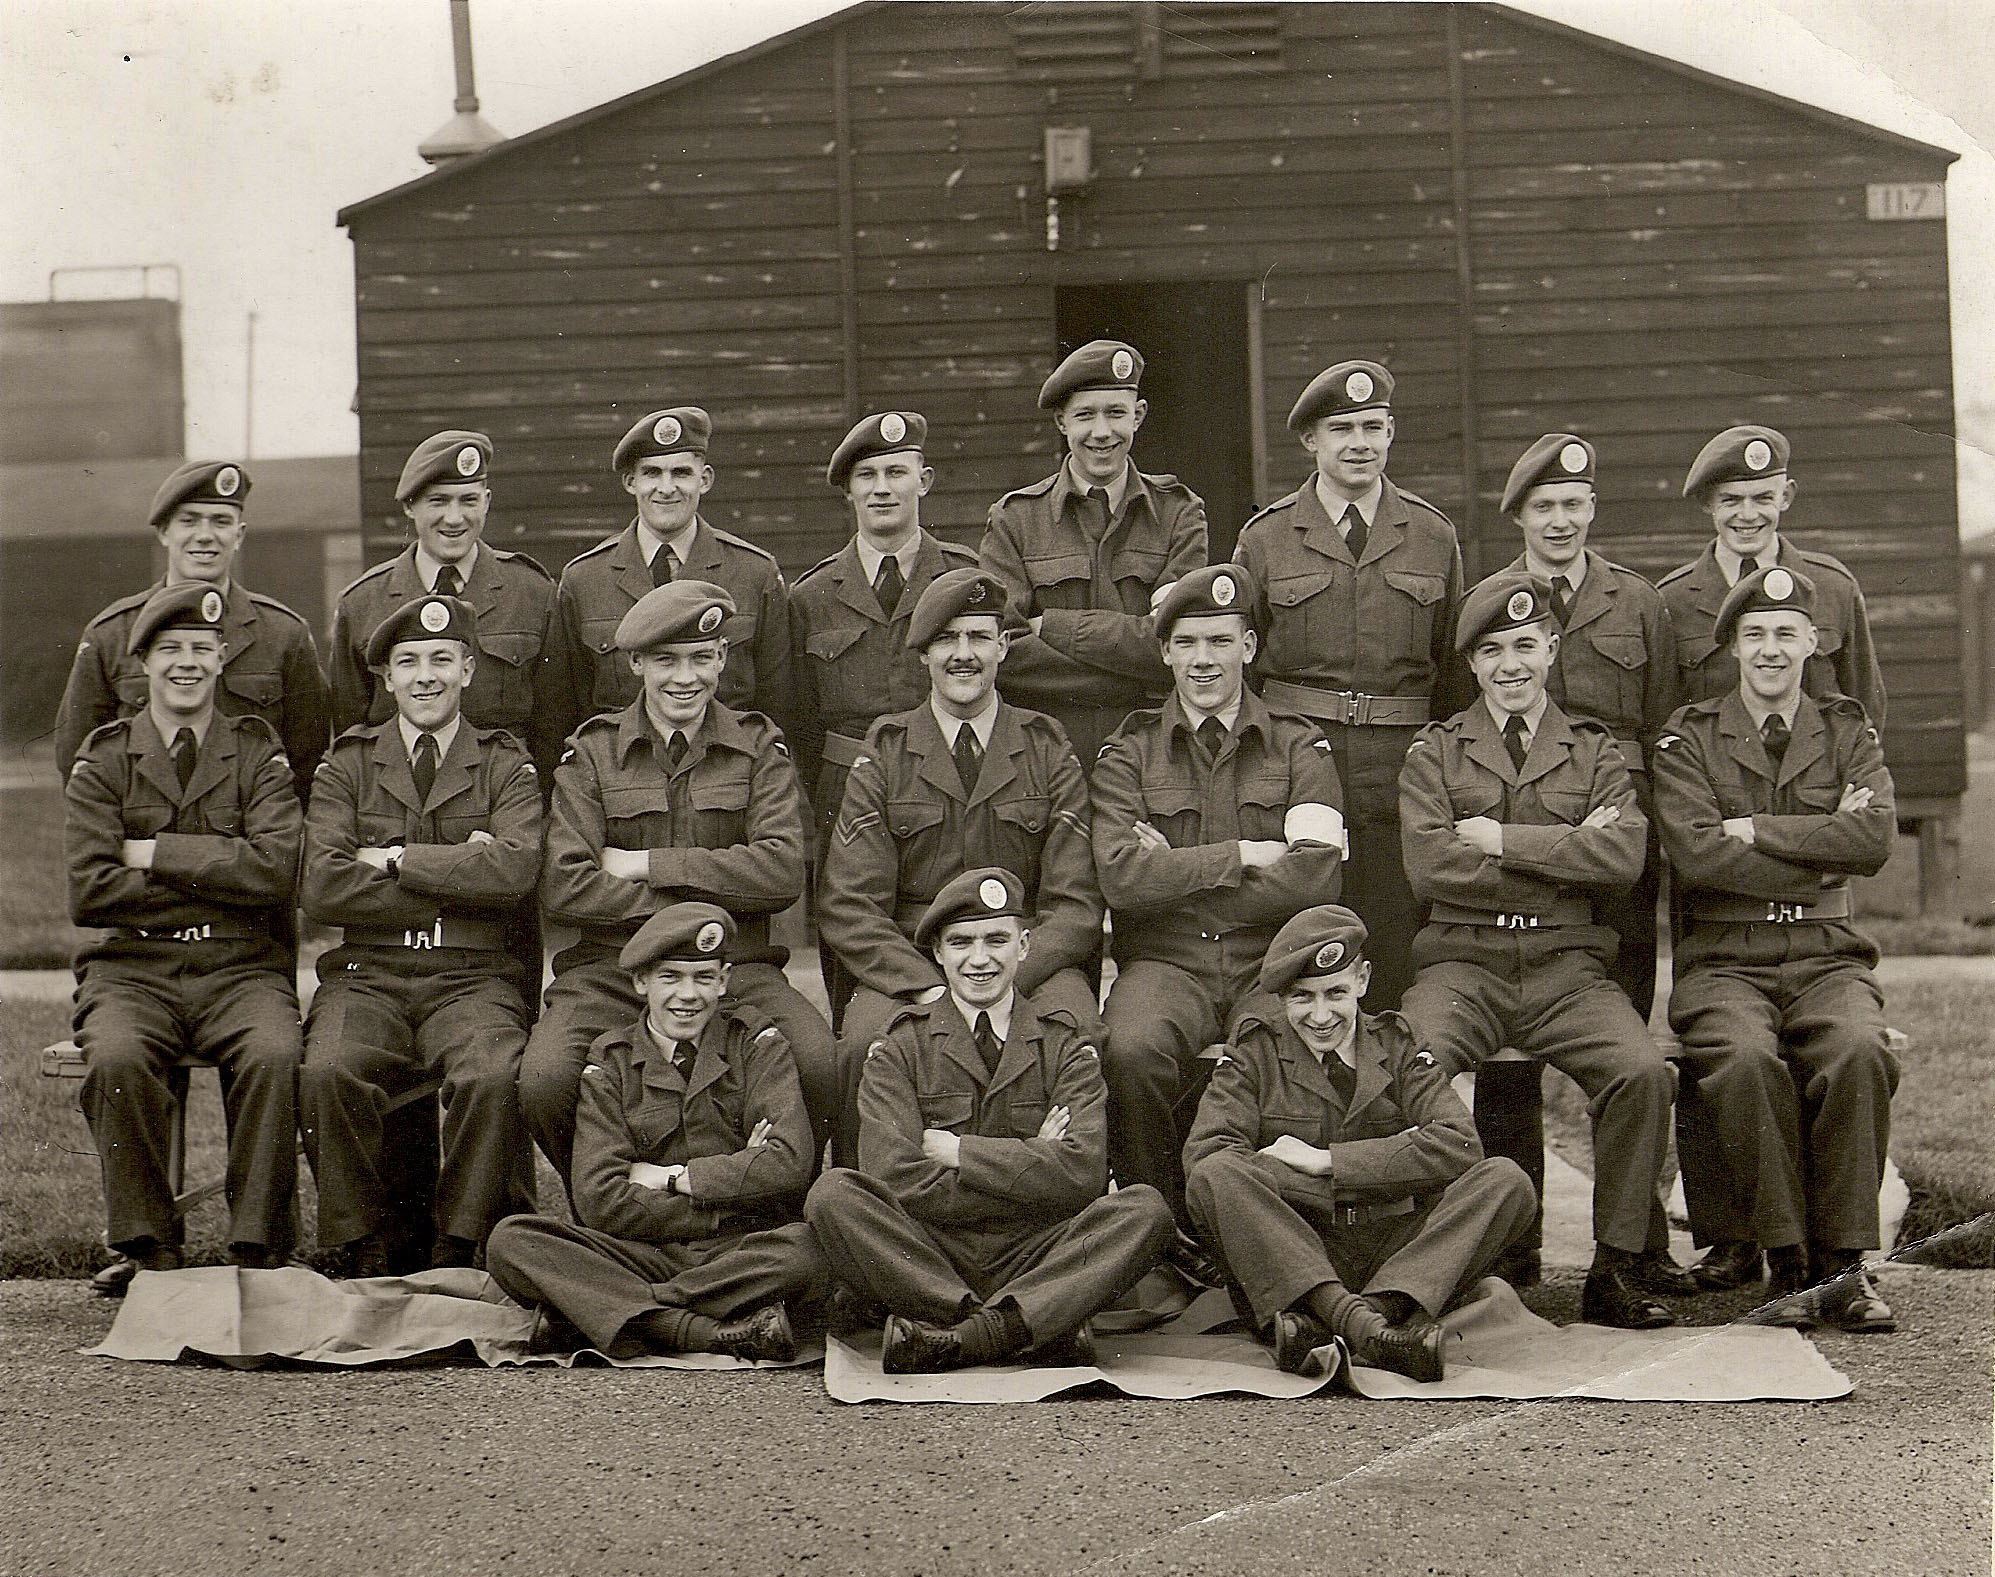 RAF Sutton-on-Hull, George Gibbs, RAF Fire Service